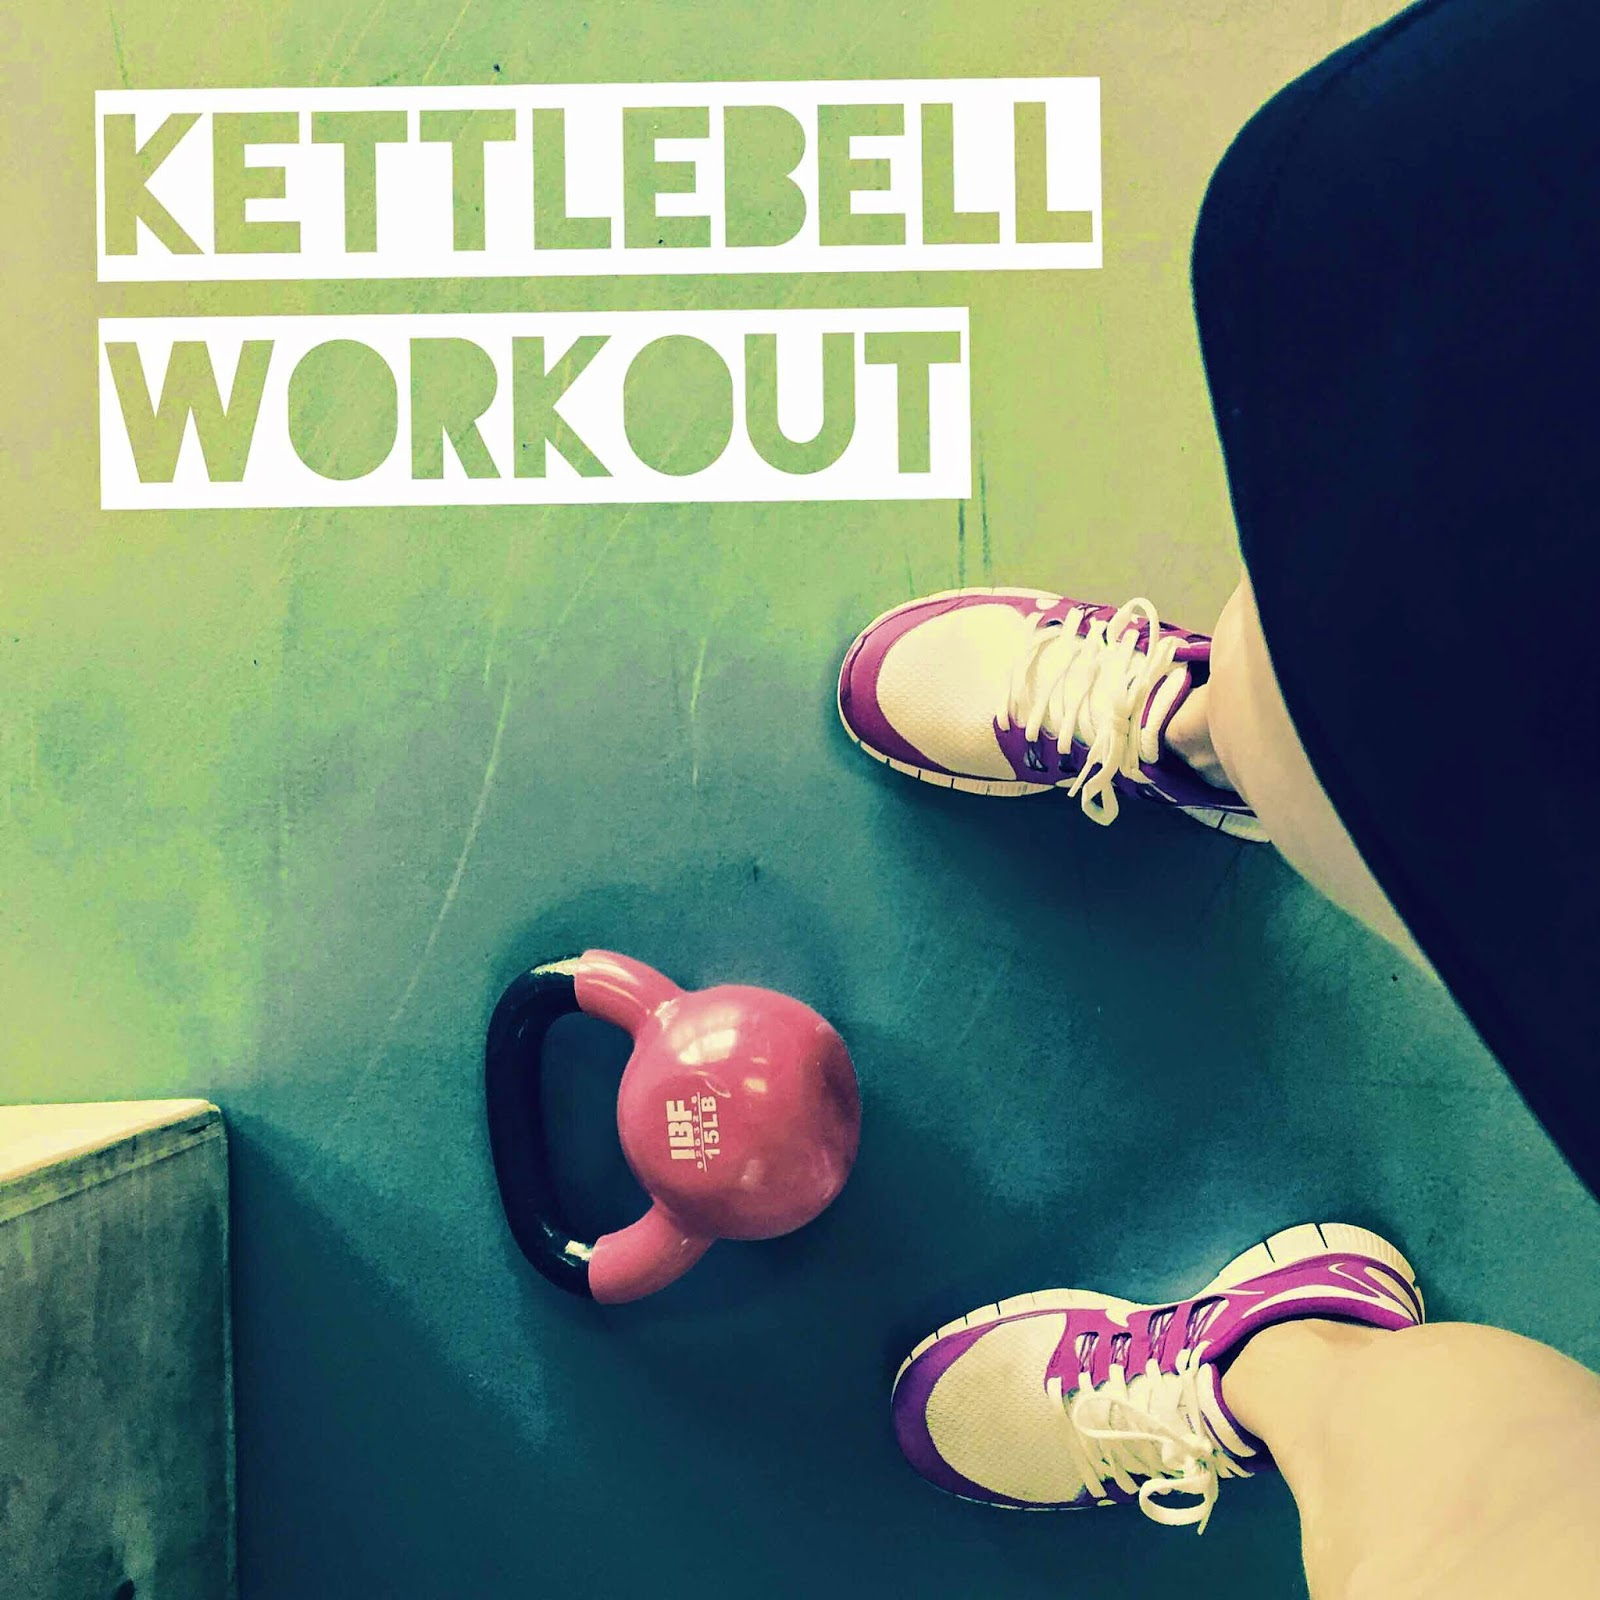 Image of kettle bell workout